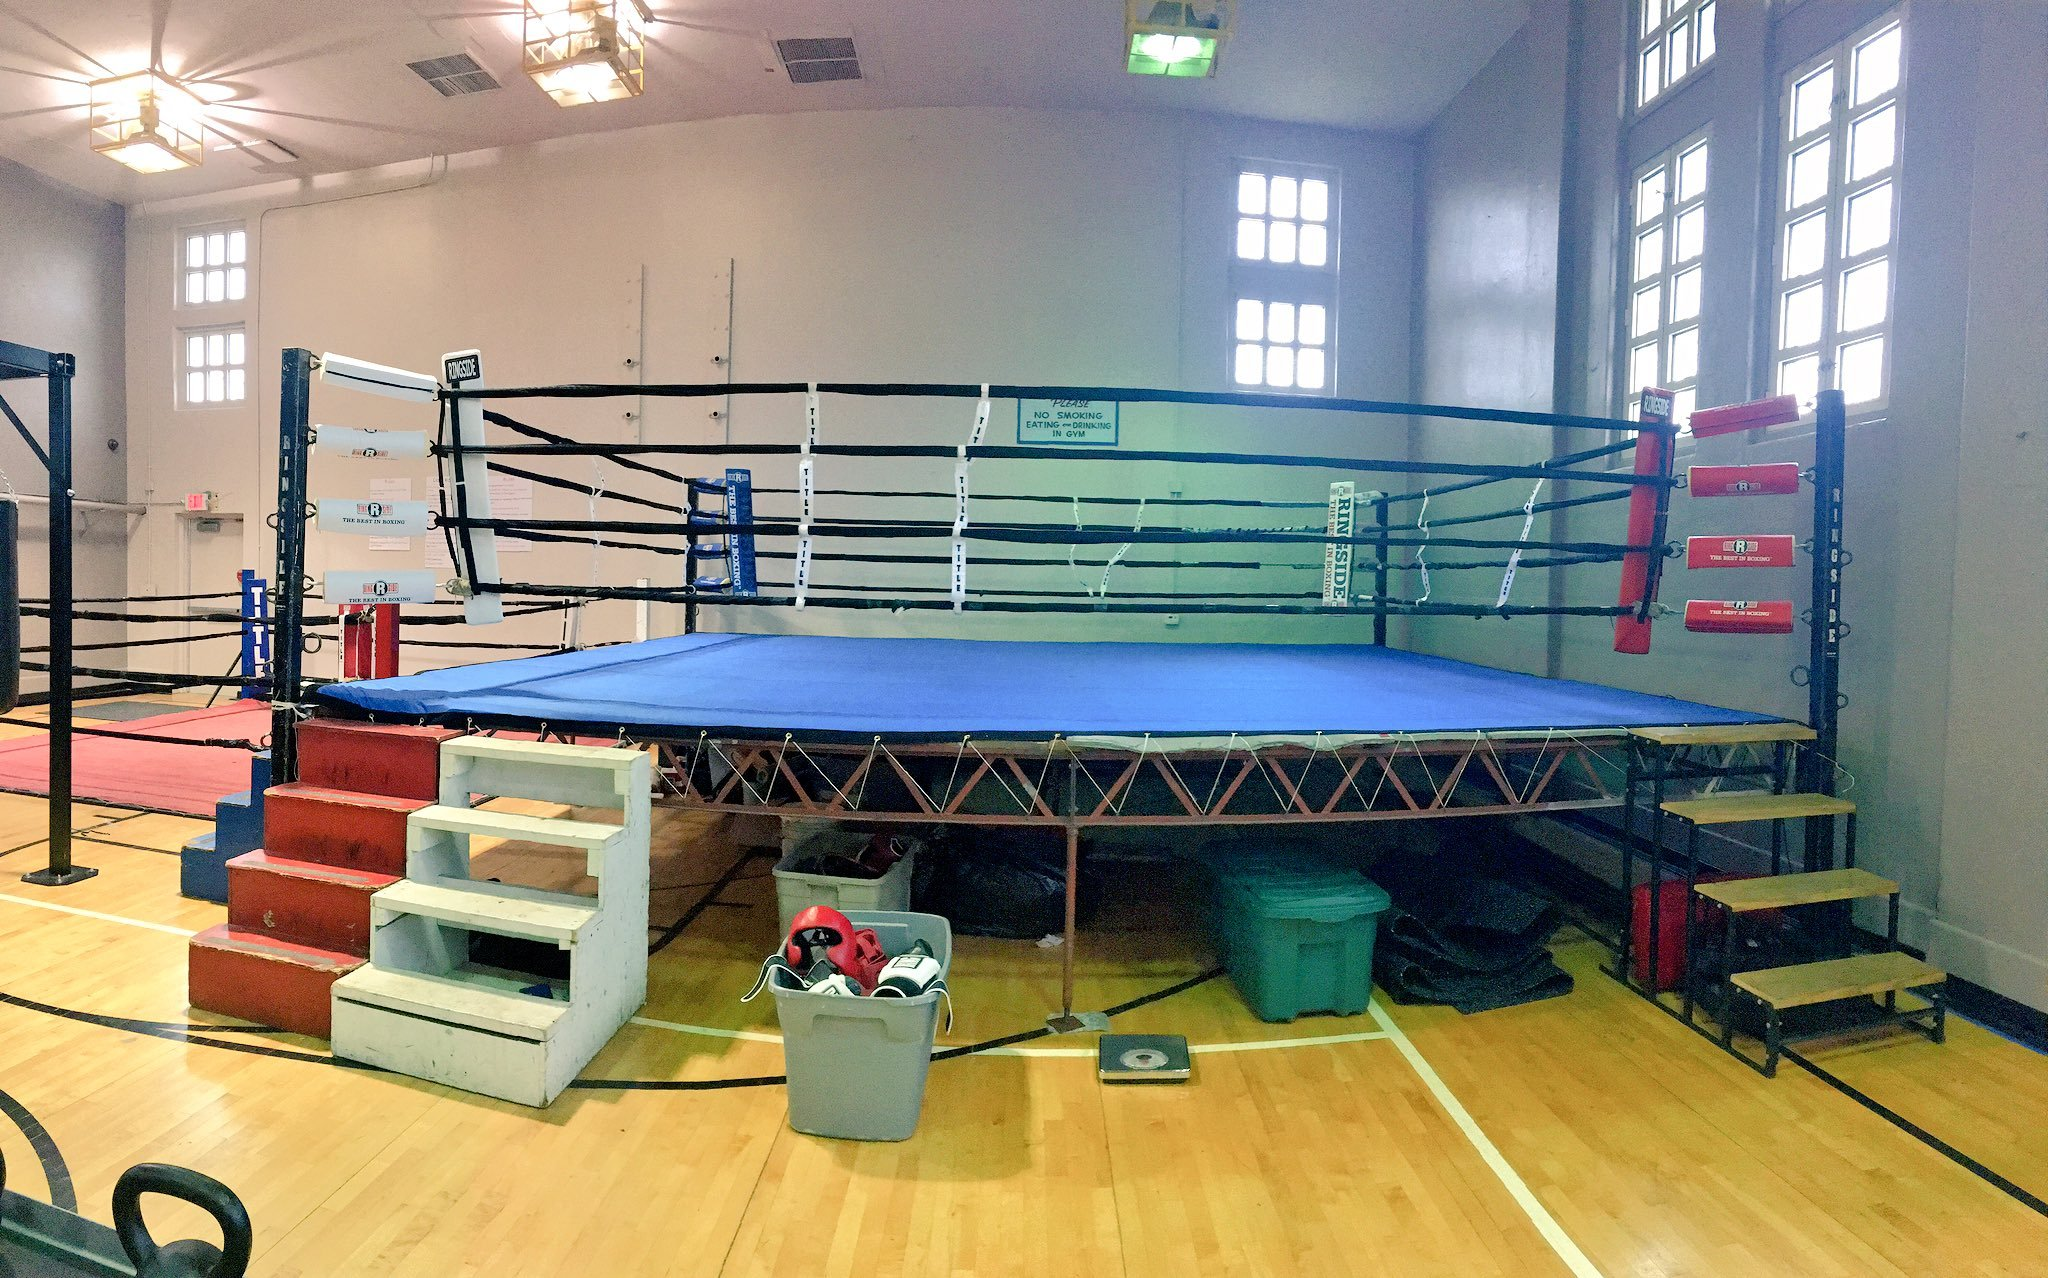 The community center started a brand new boxing club, completewith a boxing ring, practice ring and other needed equipment. (KCTV5)